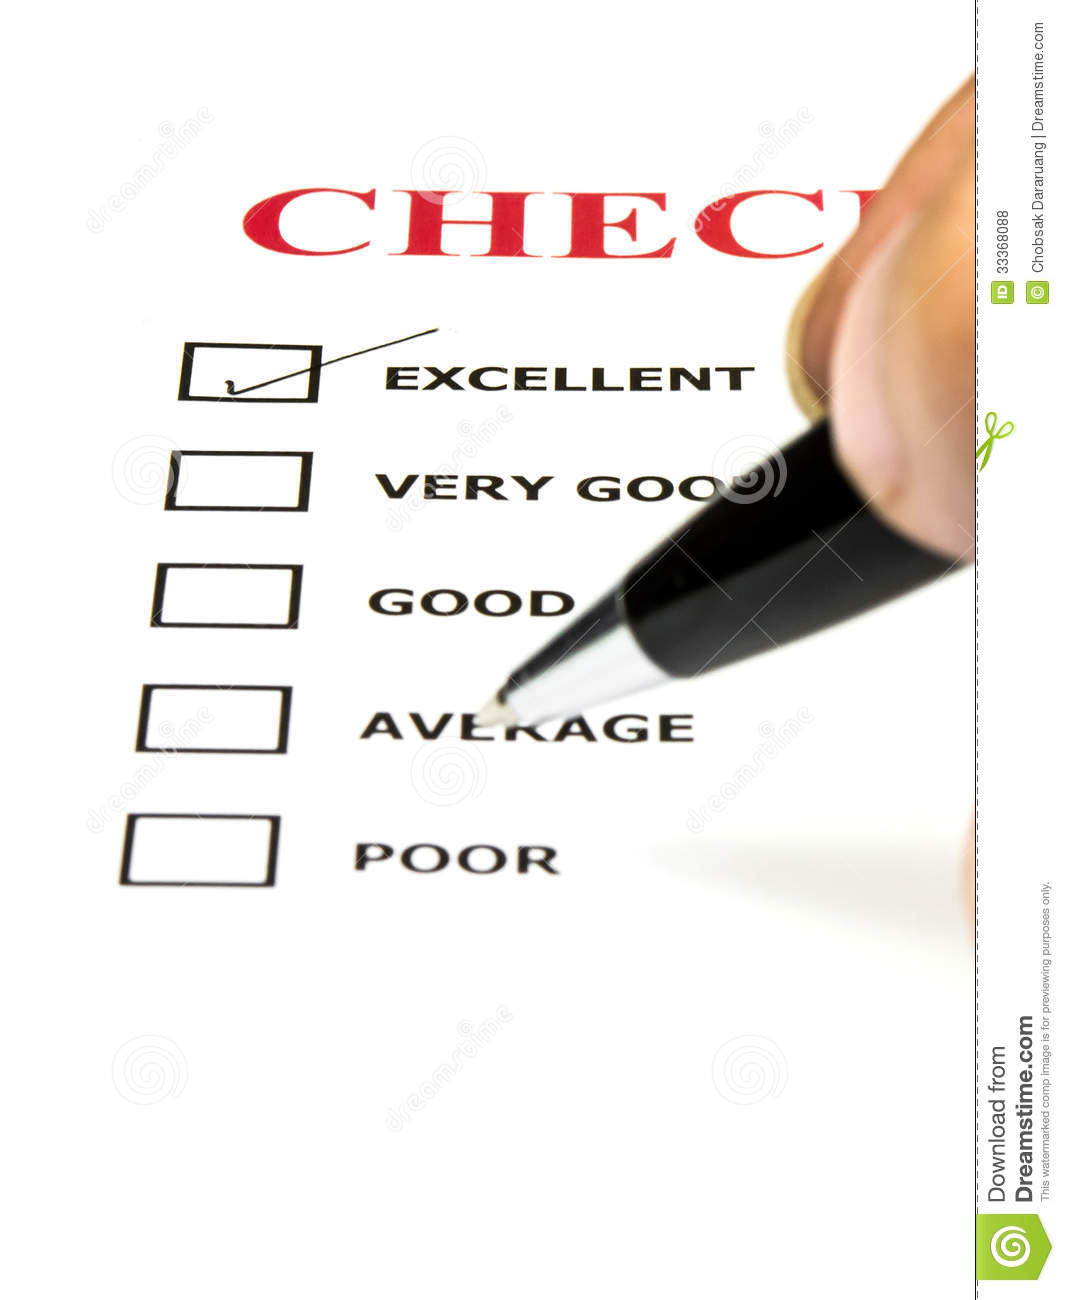 001 Essay Example Check List Survay Paper Close Up Angled Shot Survey Form Tick Excellent Box Customer Service Archaicawful My For Punctuation Errors Free On Turnitin Grammar Full